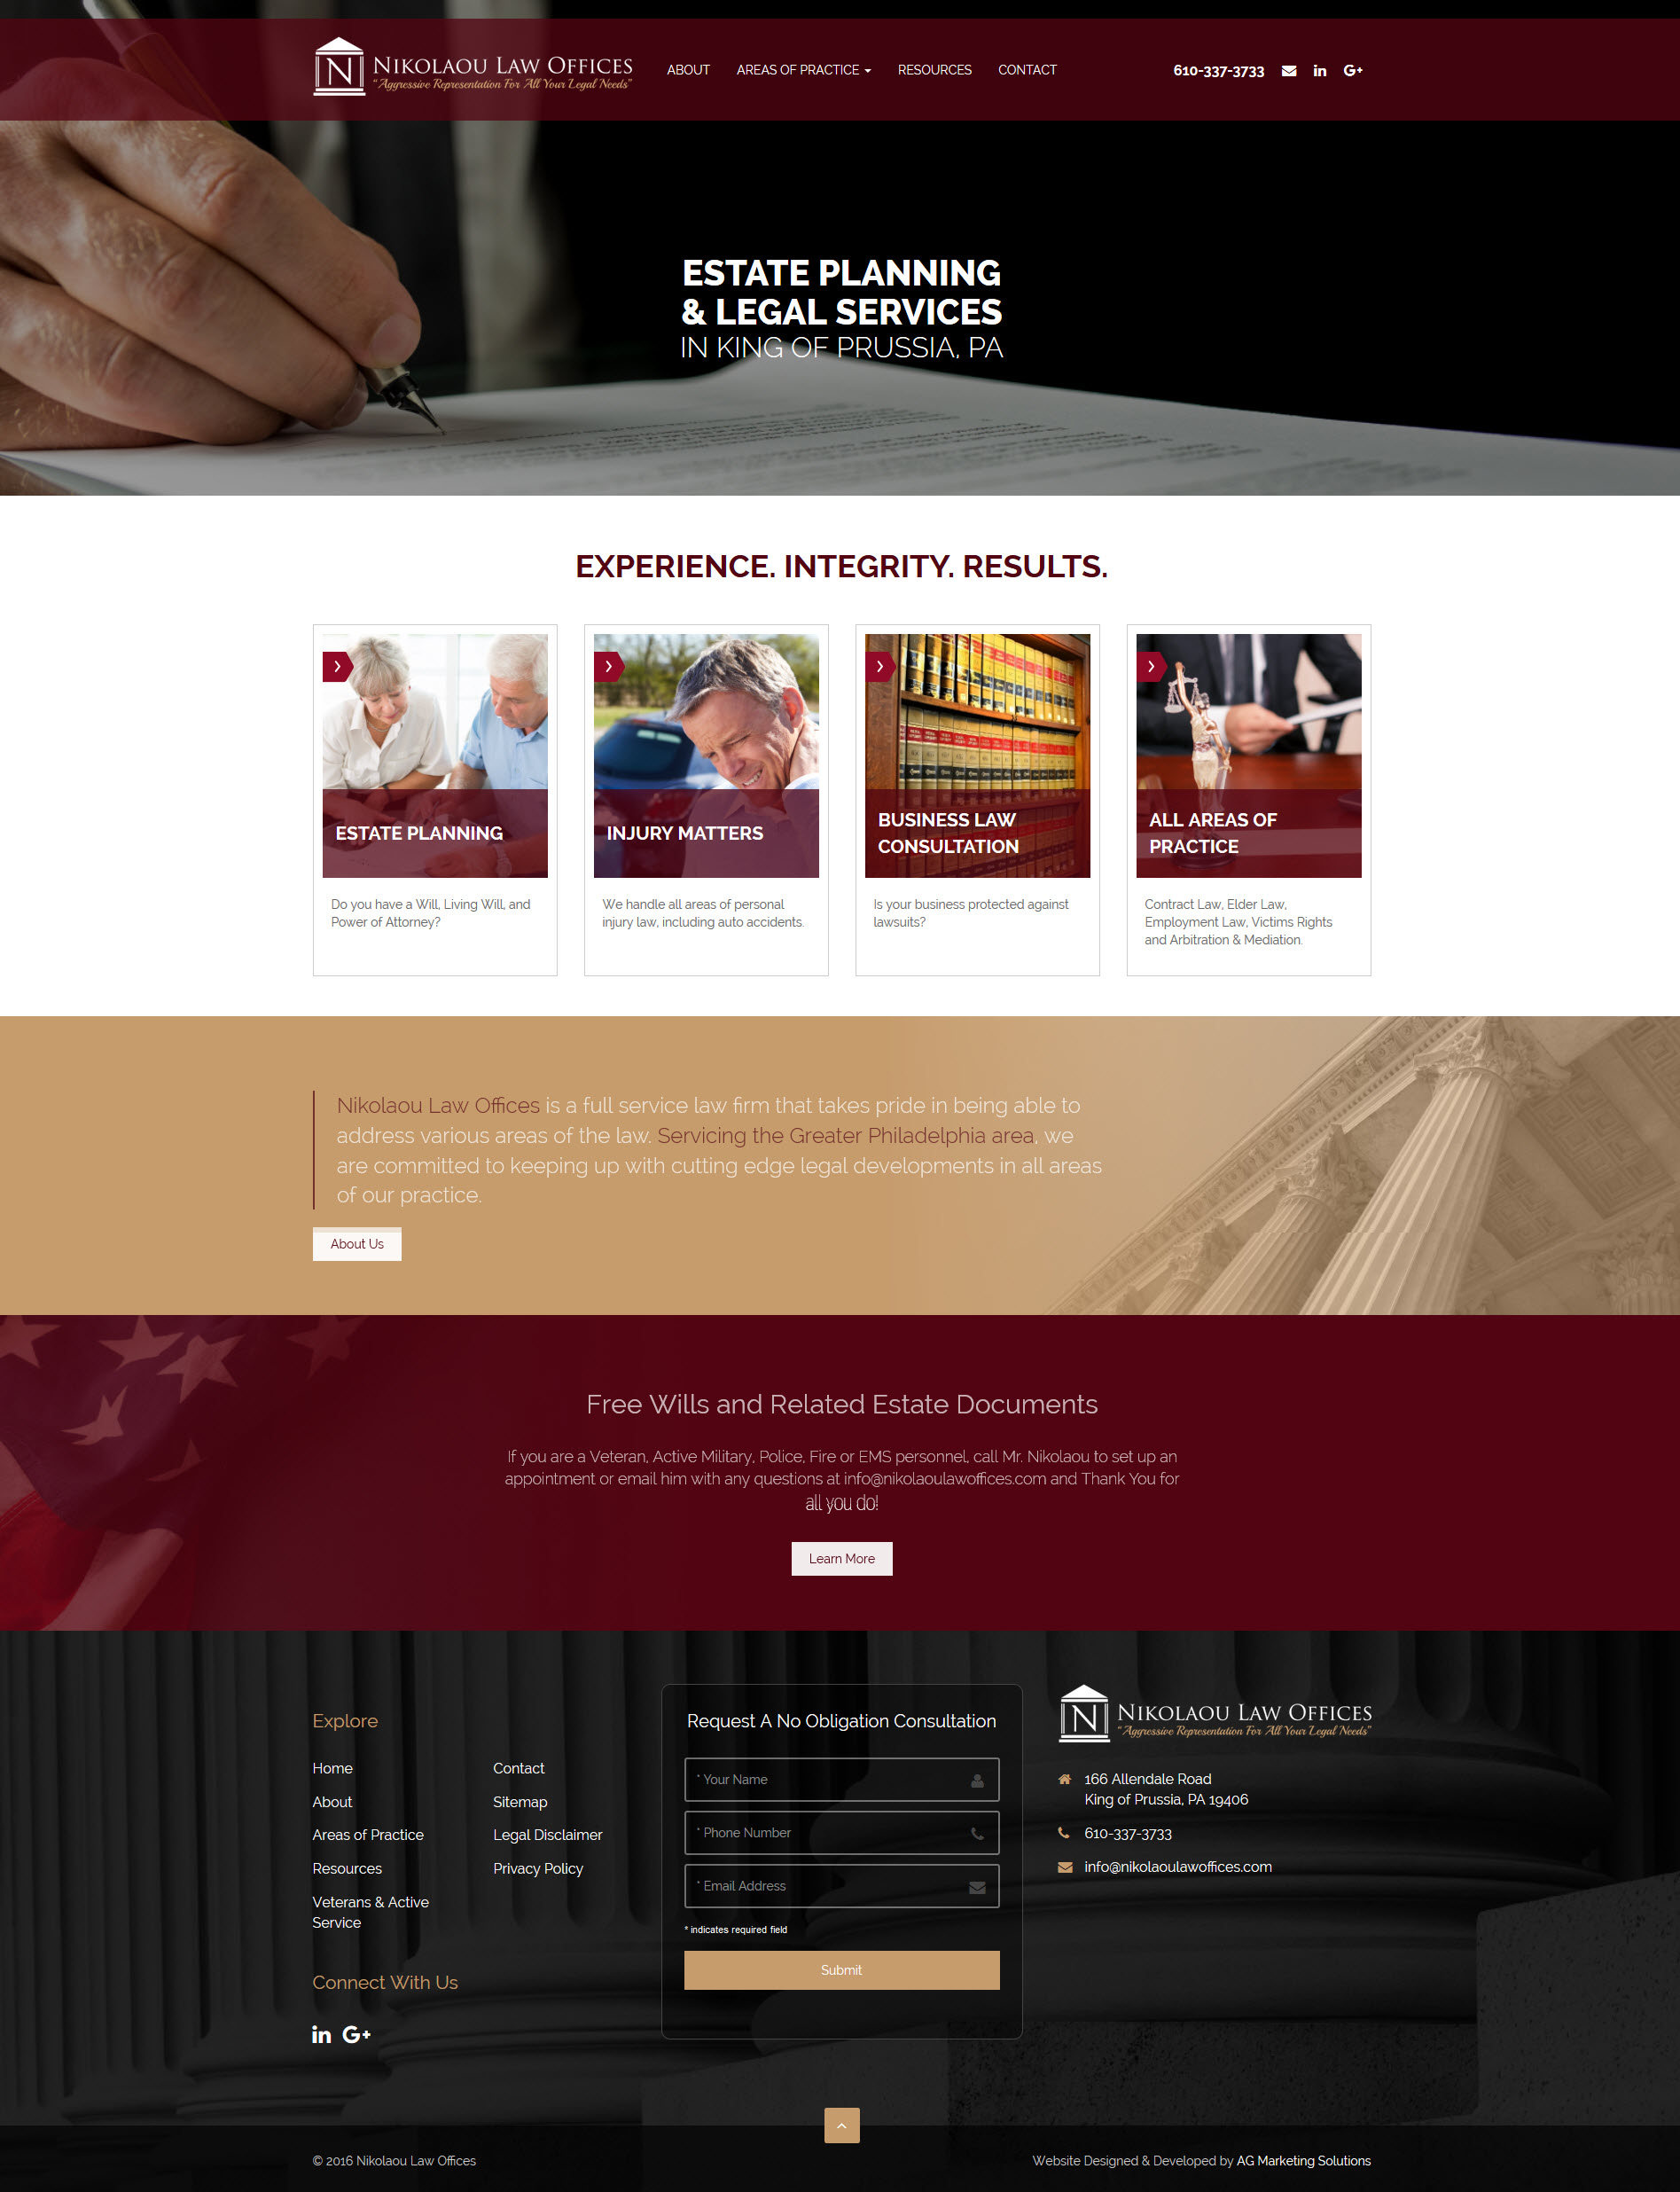 Nikolaou Law Offices responsive website at mobile resolution